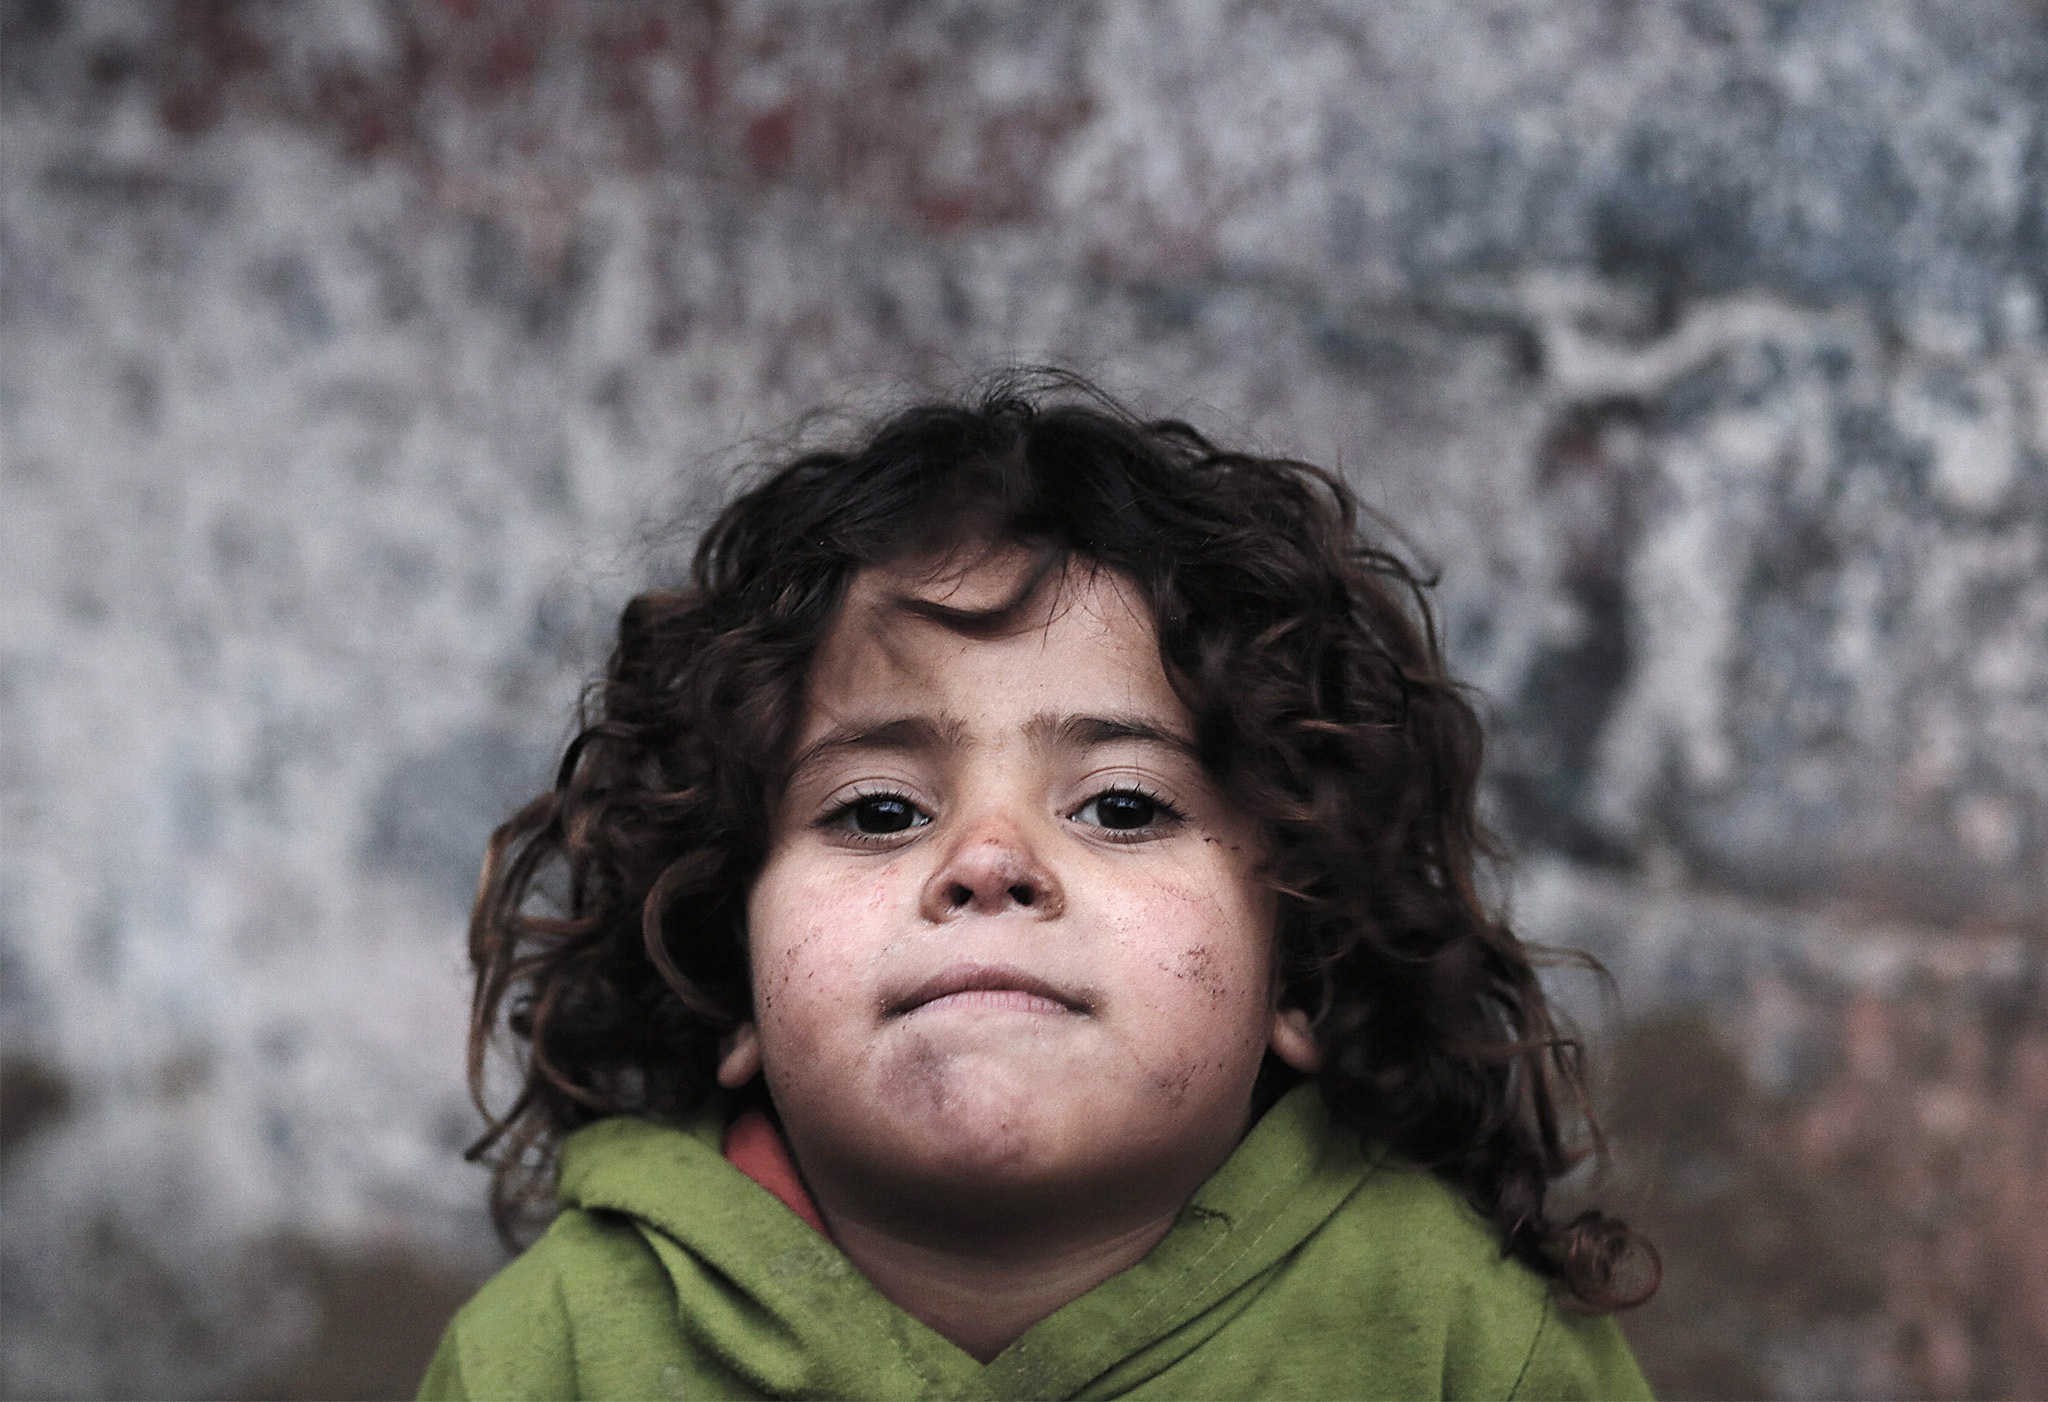 Palestinian refugee children during cold weather in Gaza City...epa05125781 A Palestinian refugee girl poses for a photograph outside her family's small house during cold weather on a rainy day in Gaza City, the Gaza Strip, 25 January 2016.